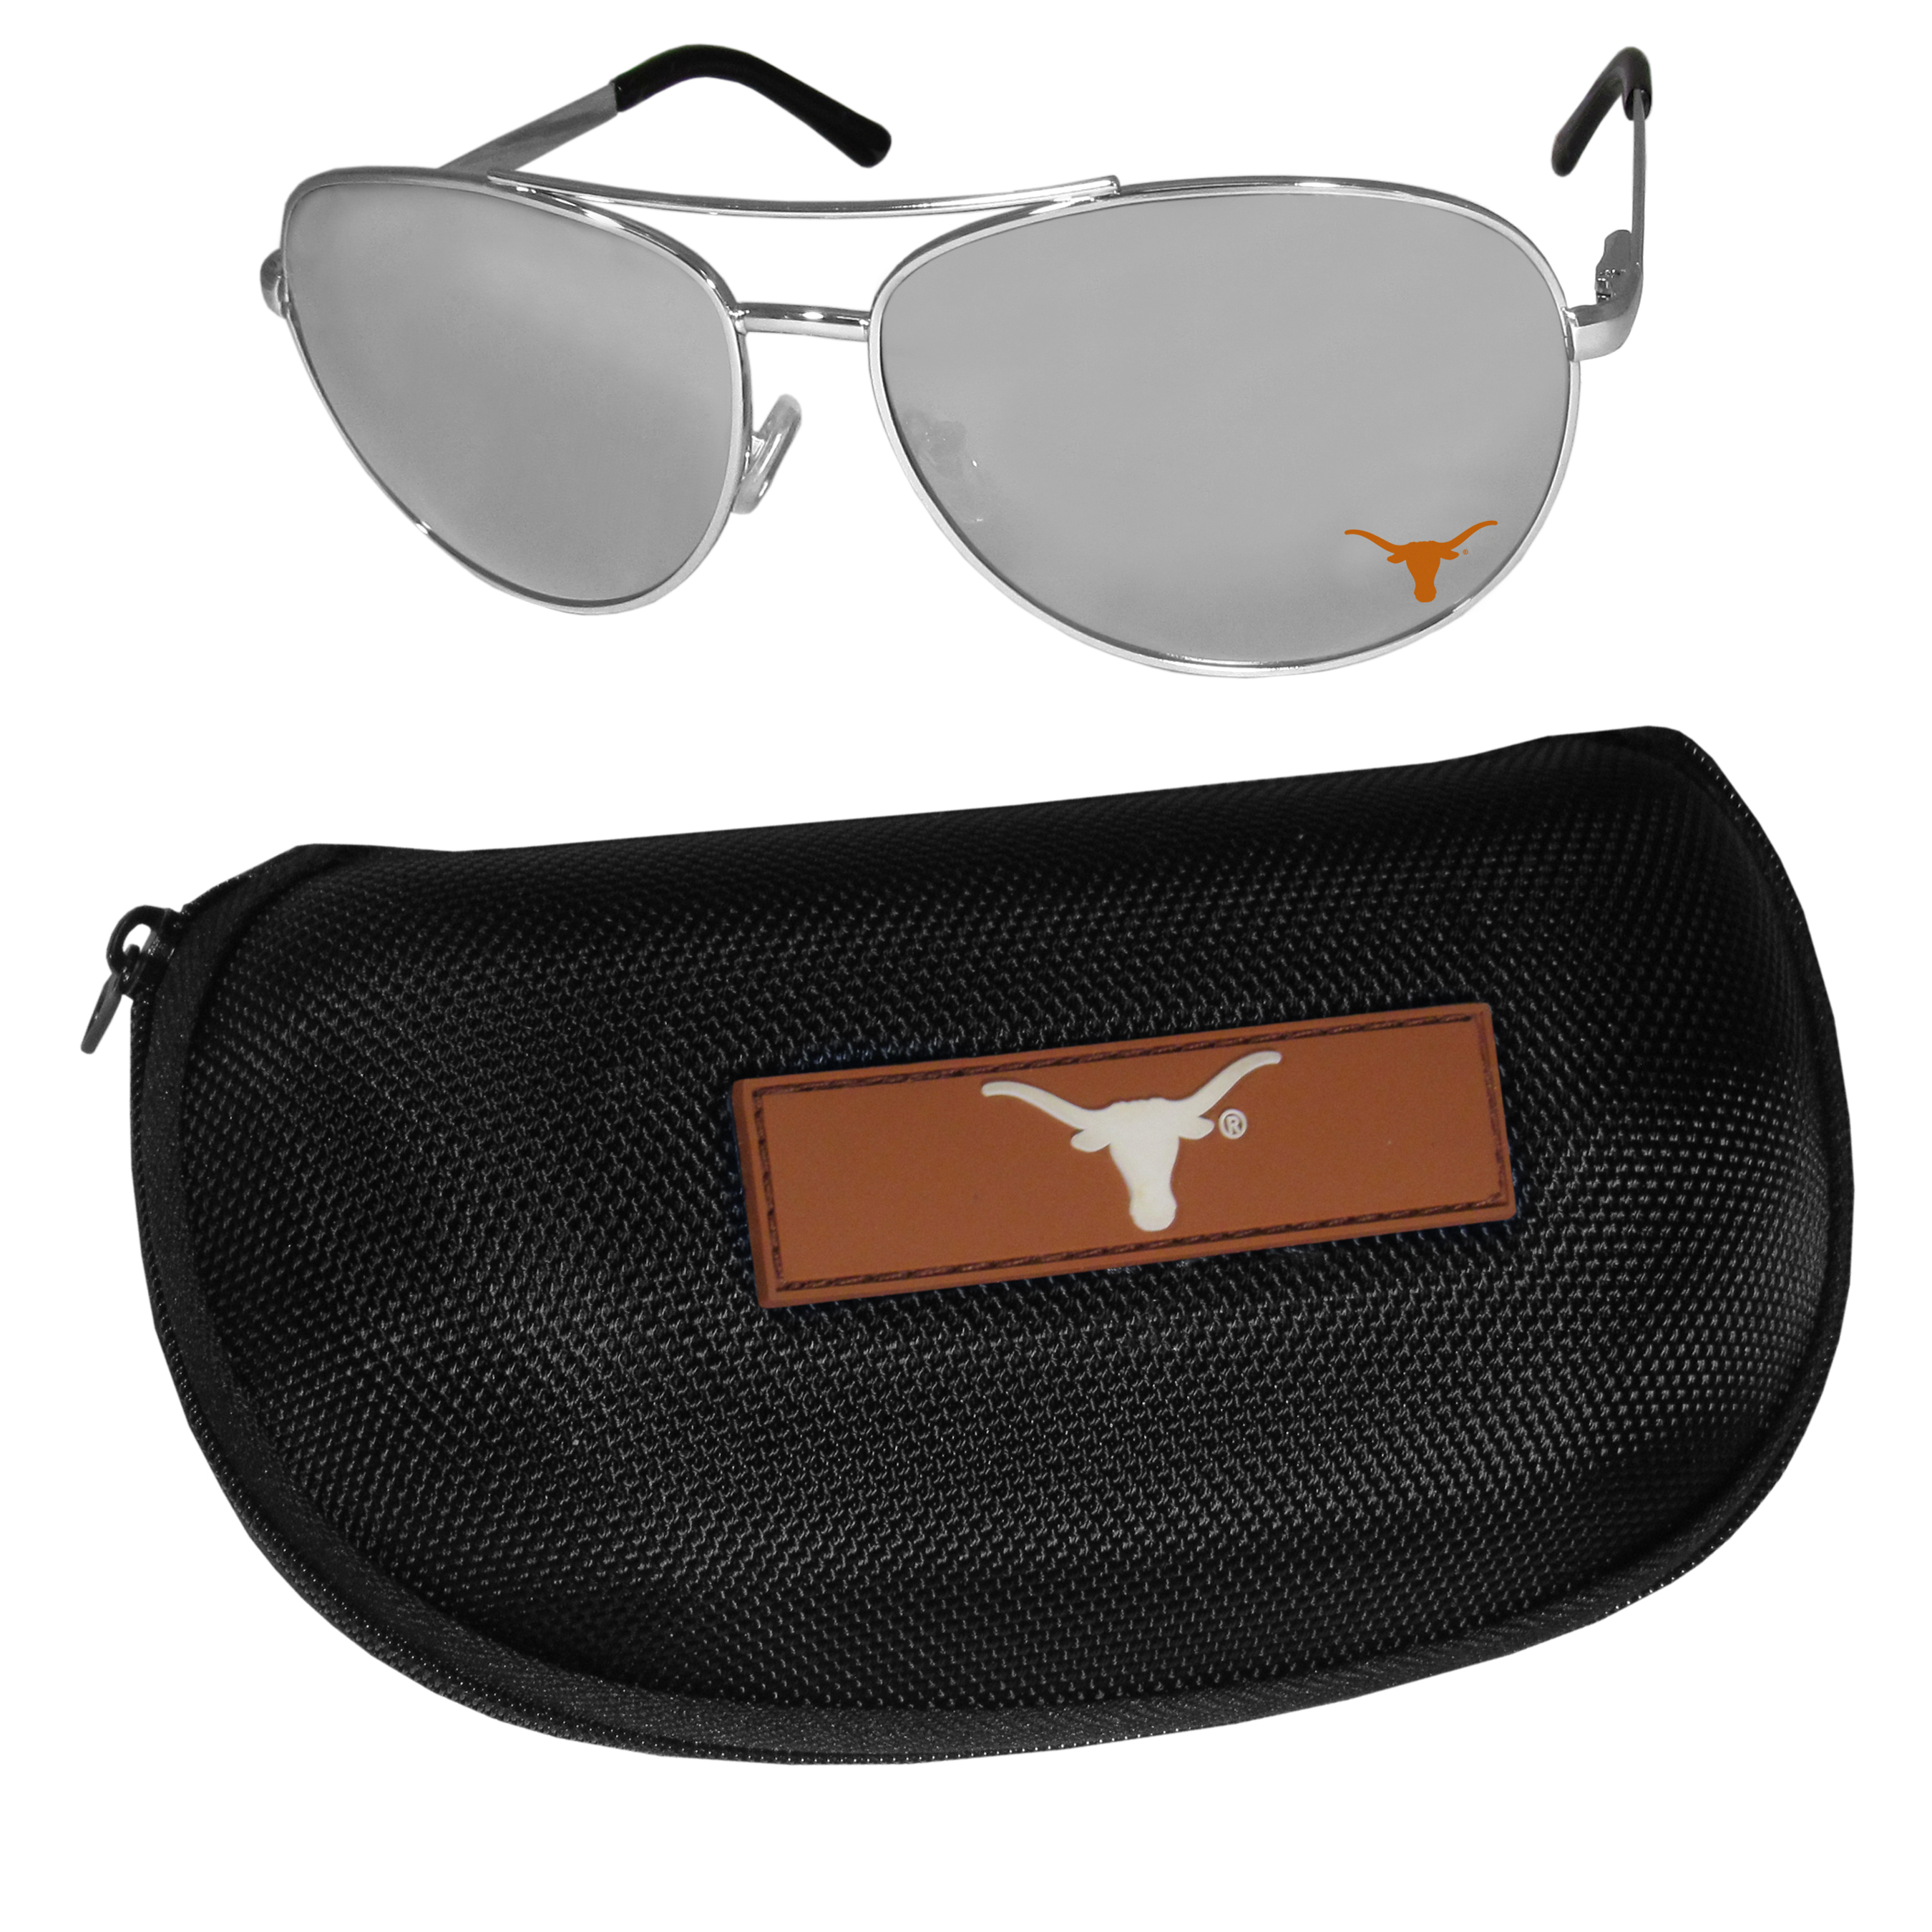 Texas Longhorns Aviator Sunglasses and Zippered Carrying Case - Aviator sunglasses are truly an iconic retro fashion statement that never goes out-of-style. Our Texas Longhorns  aviator sunglasses pair this classic look with your love of the game. The iridium coated lenses reduce glare while driving, boating, golfing and their 100% UVA/UVB rating provides you with the maximum UV protection for all your outdoor activities. A millennial favorite, these affordable designer frames are the perfect eyewear accessory for a sports fan that is looking for high-quality at an affordable price. The durable, flex hinged frames are tough enough for hiking and camping or if you prefer sun bathing by the pool or on the beach these shades will really stand the test of time. The sunglasses come with a hard shell zippered case which has a large team logo on the lid that will make even the most die-hard fan proud!